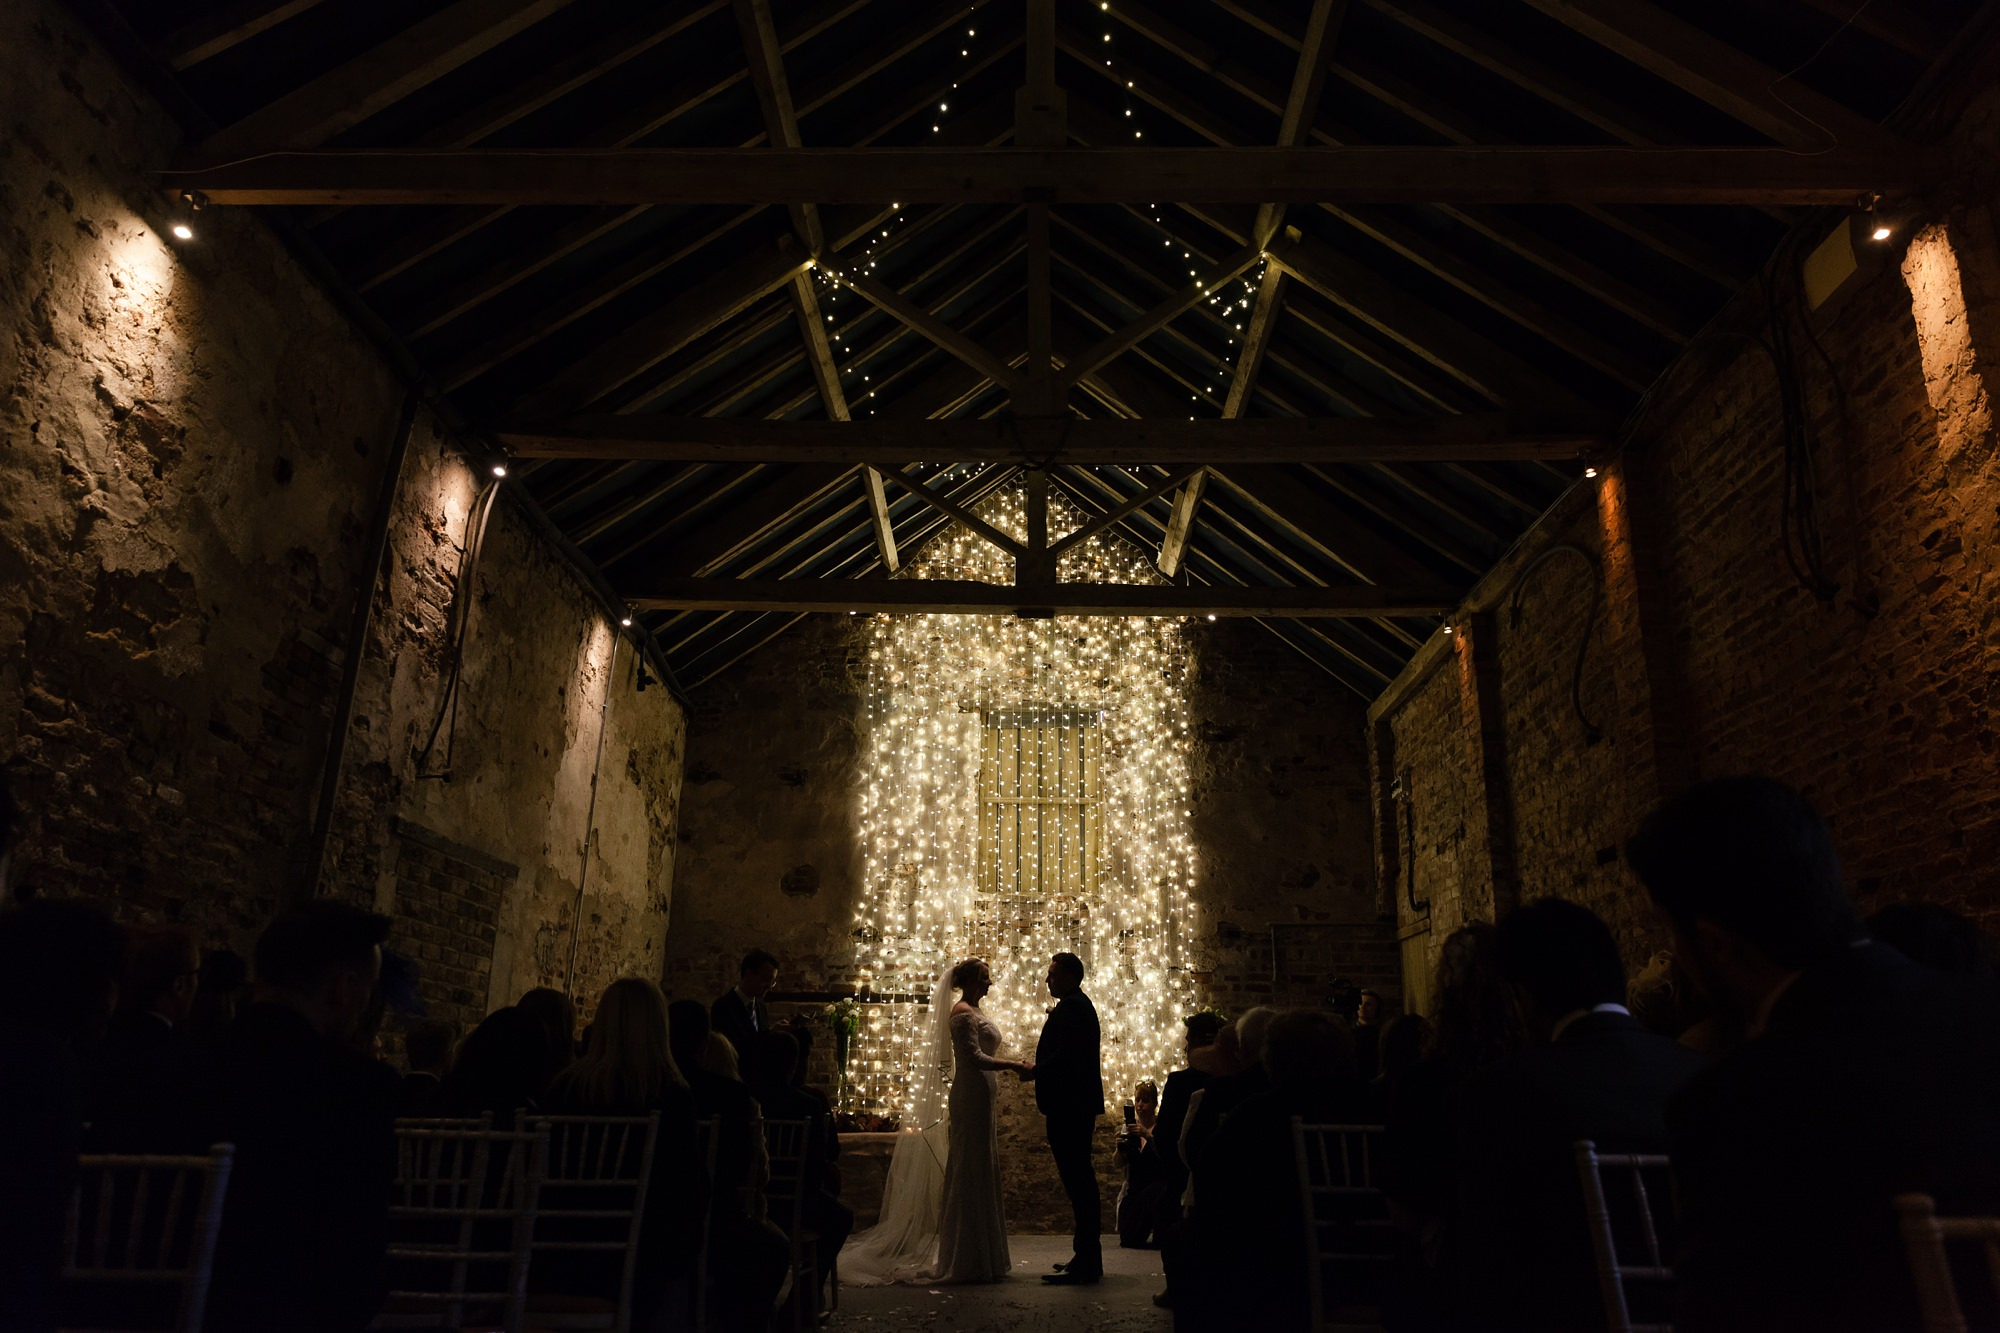 Bride & Groom at ceremony at The Normans in York